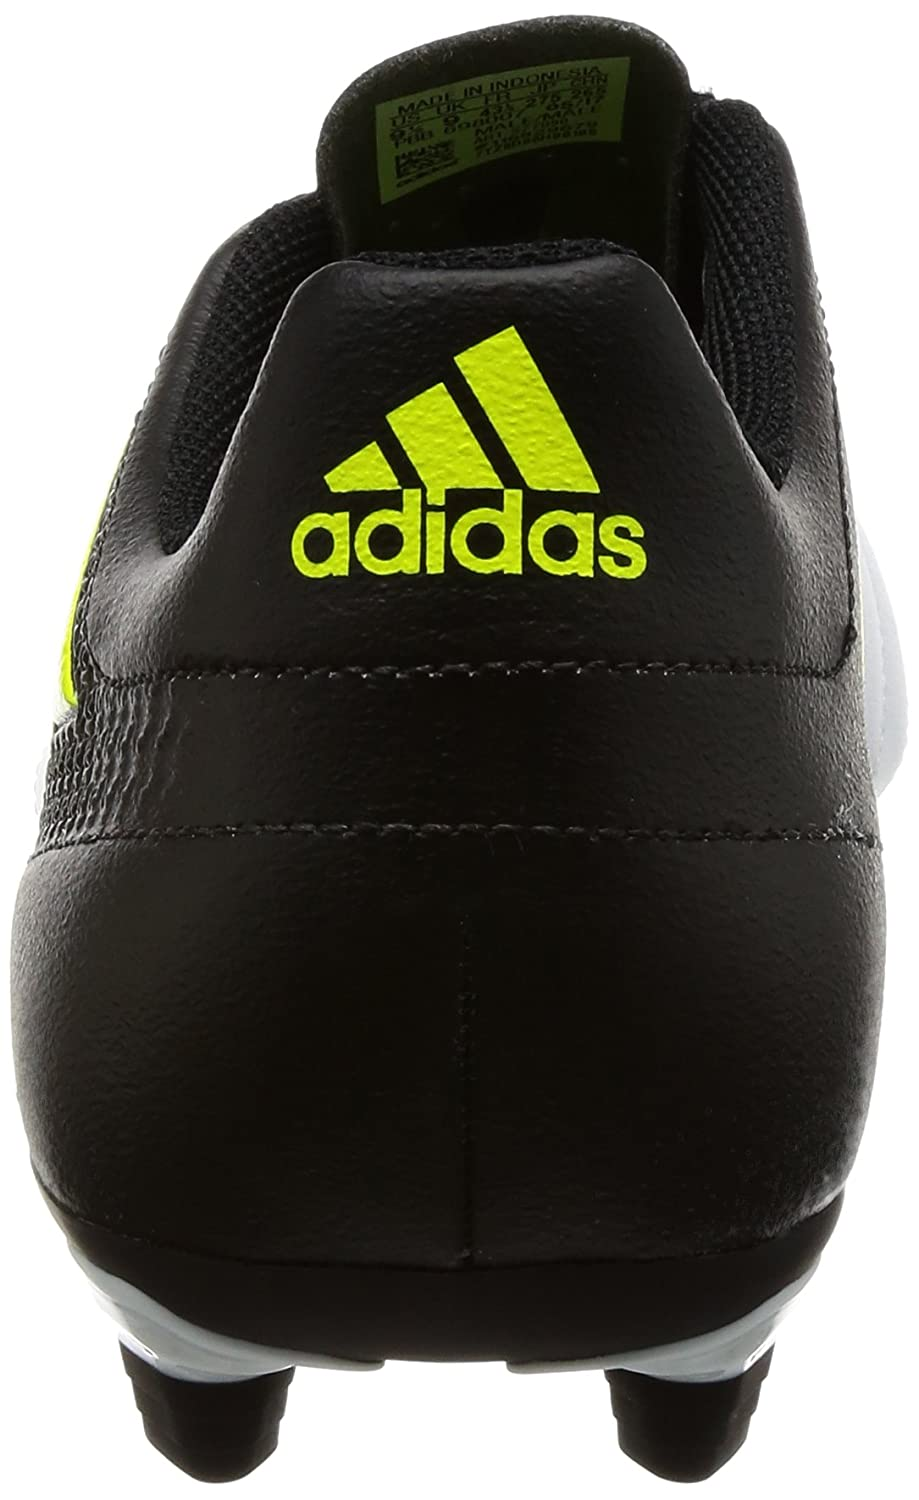 promo code 4487c 6a59f Adidas Mens Ace 17.4 FxG FtwwhtSyelloCblack Football Boots - 6 UKIndia  (39.33 EU) (S77090) Buy Online at Low Prices in India - Amazon.in